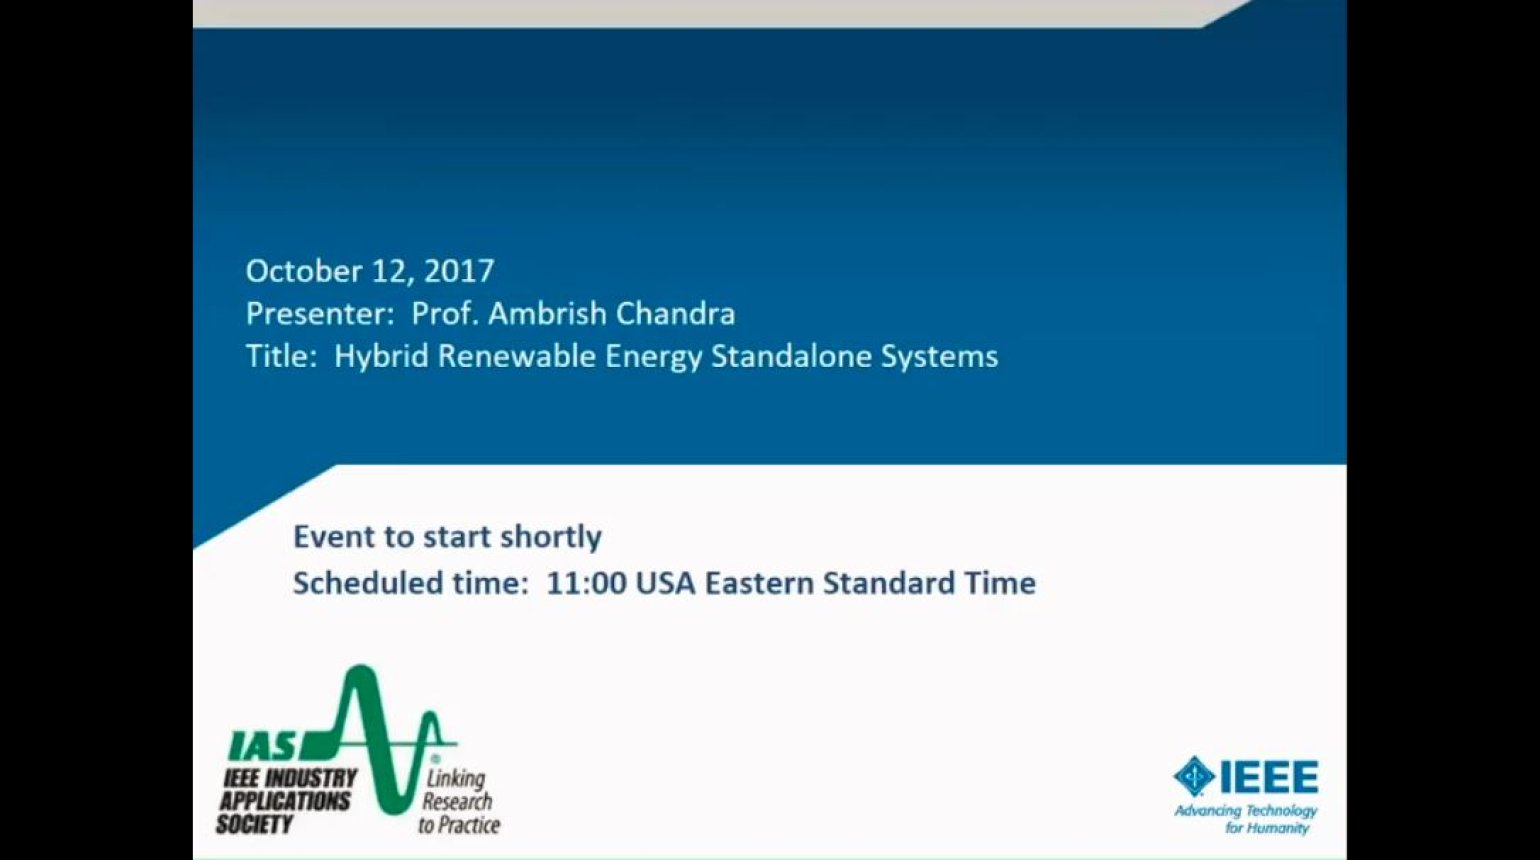 IAS Webinar Series -Hybrid Renewable Energy Standalone Systems